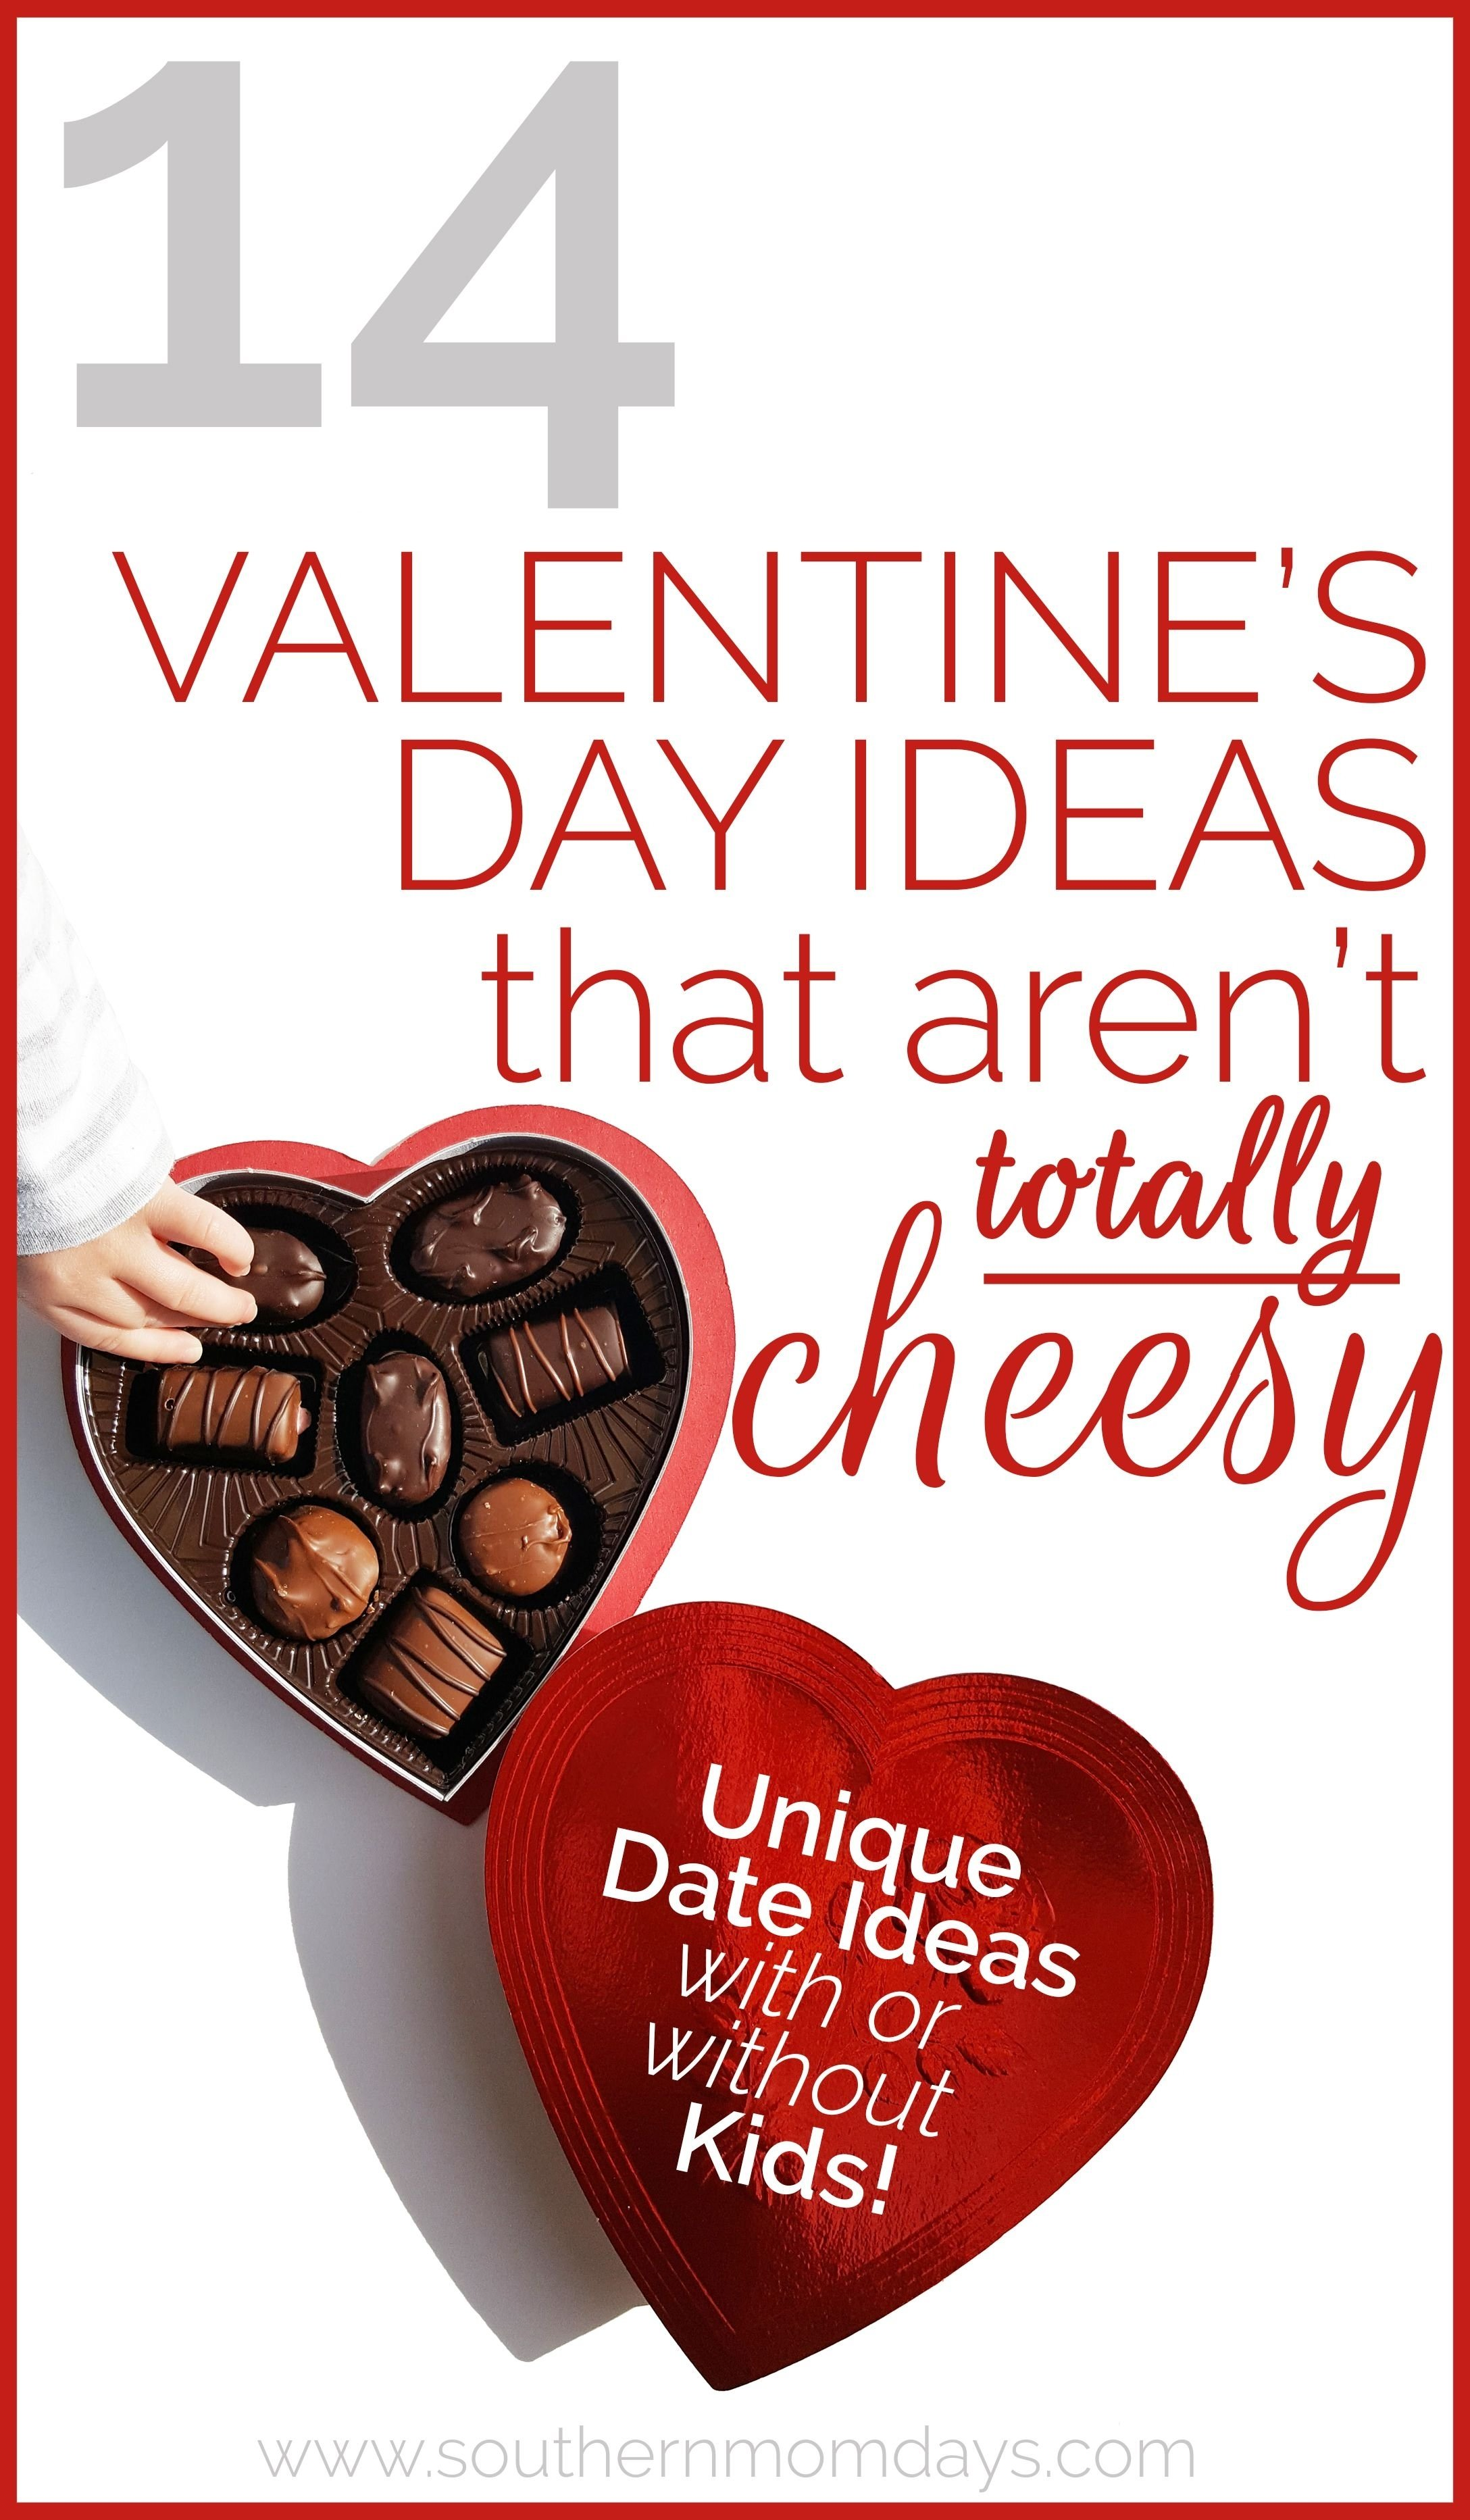 10 Stunning Valentines Date Ideas For Her 14 valentines day ideas that arent totally cheesy 2021